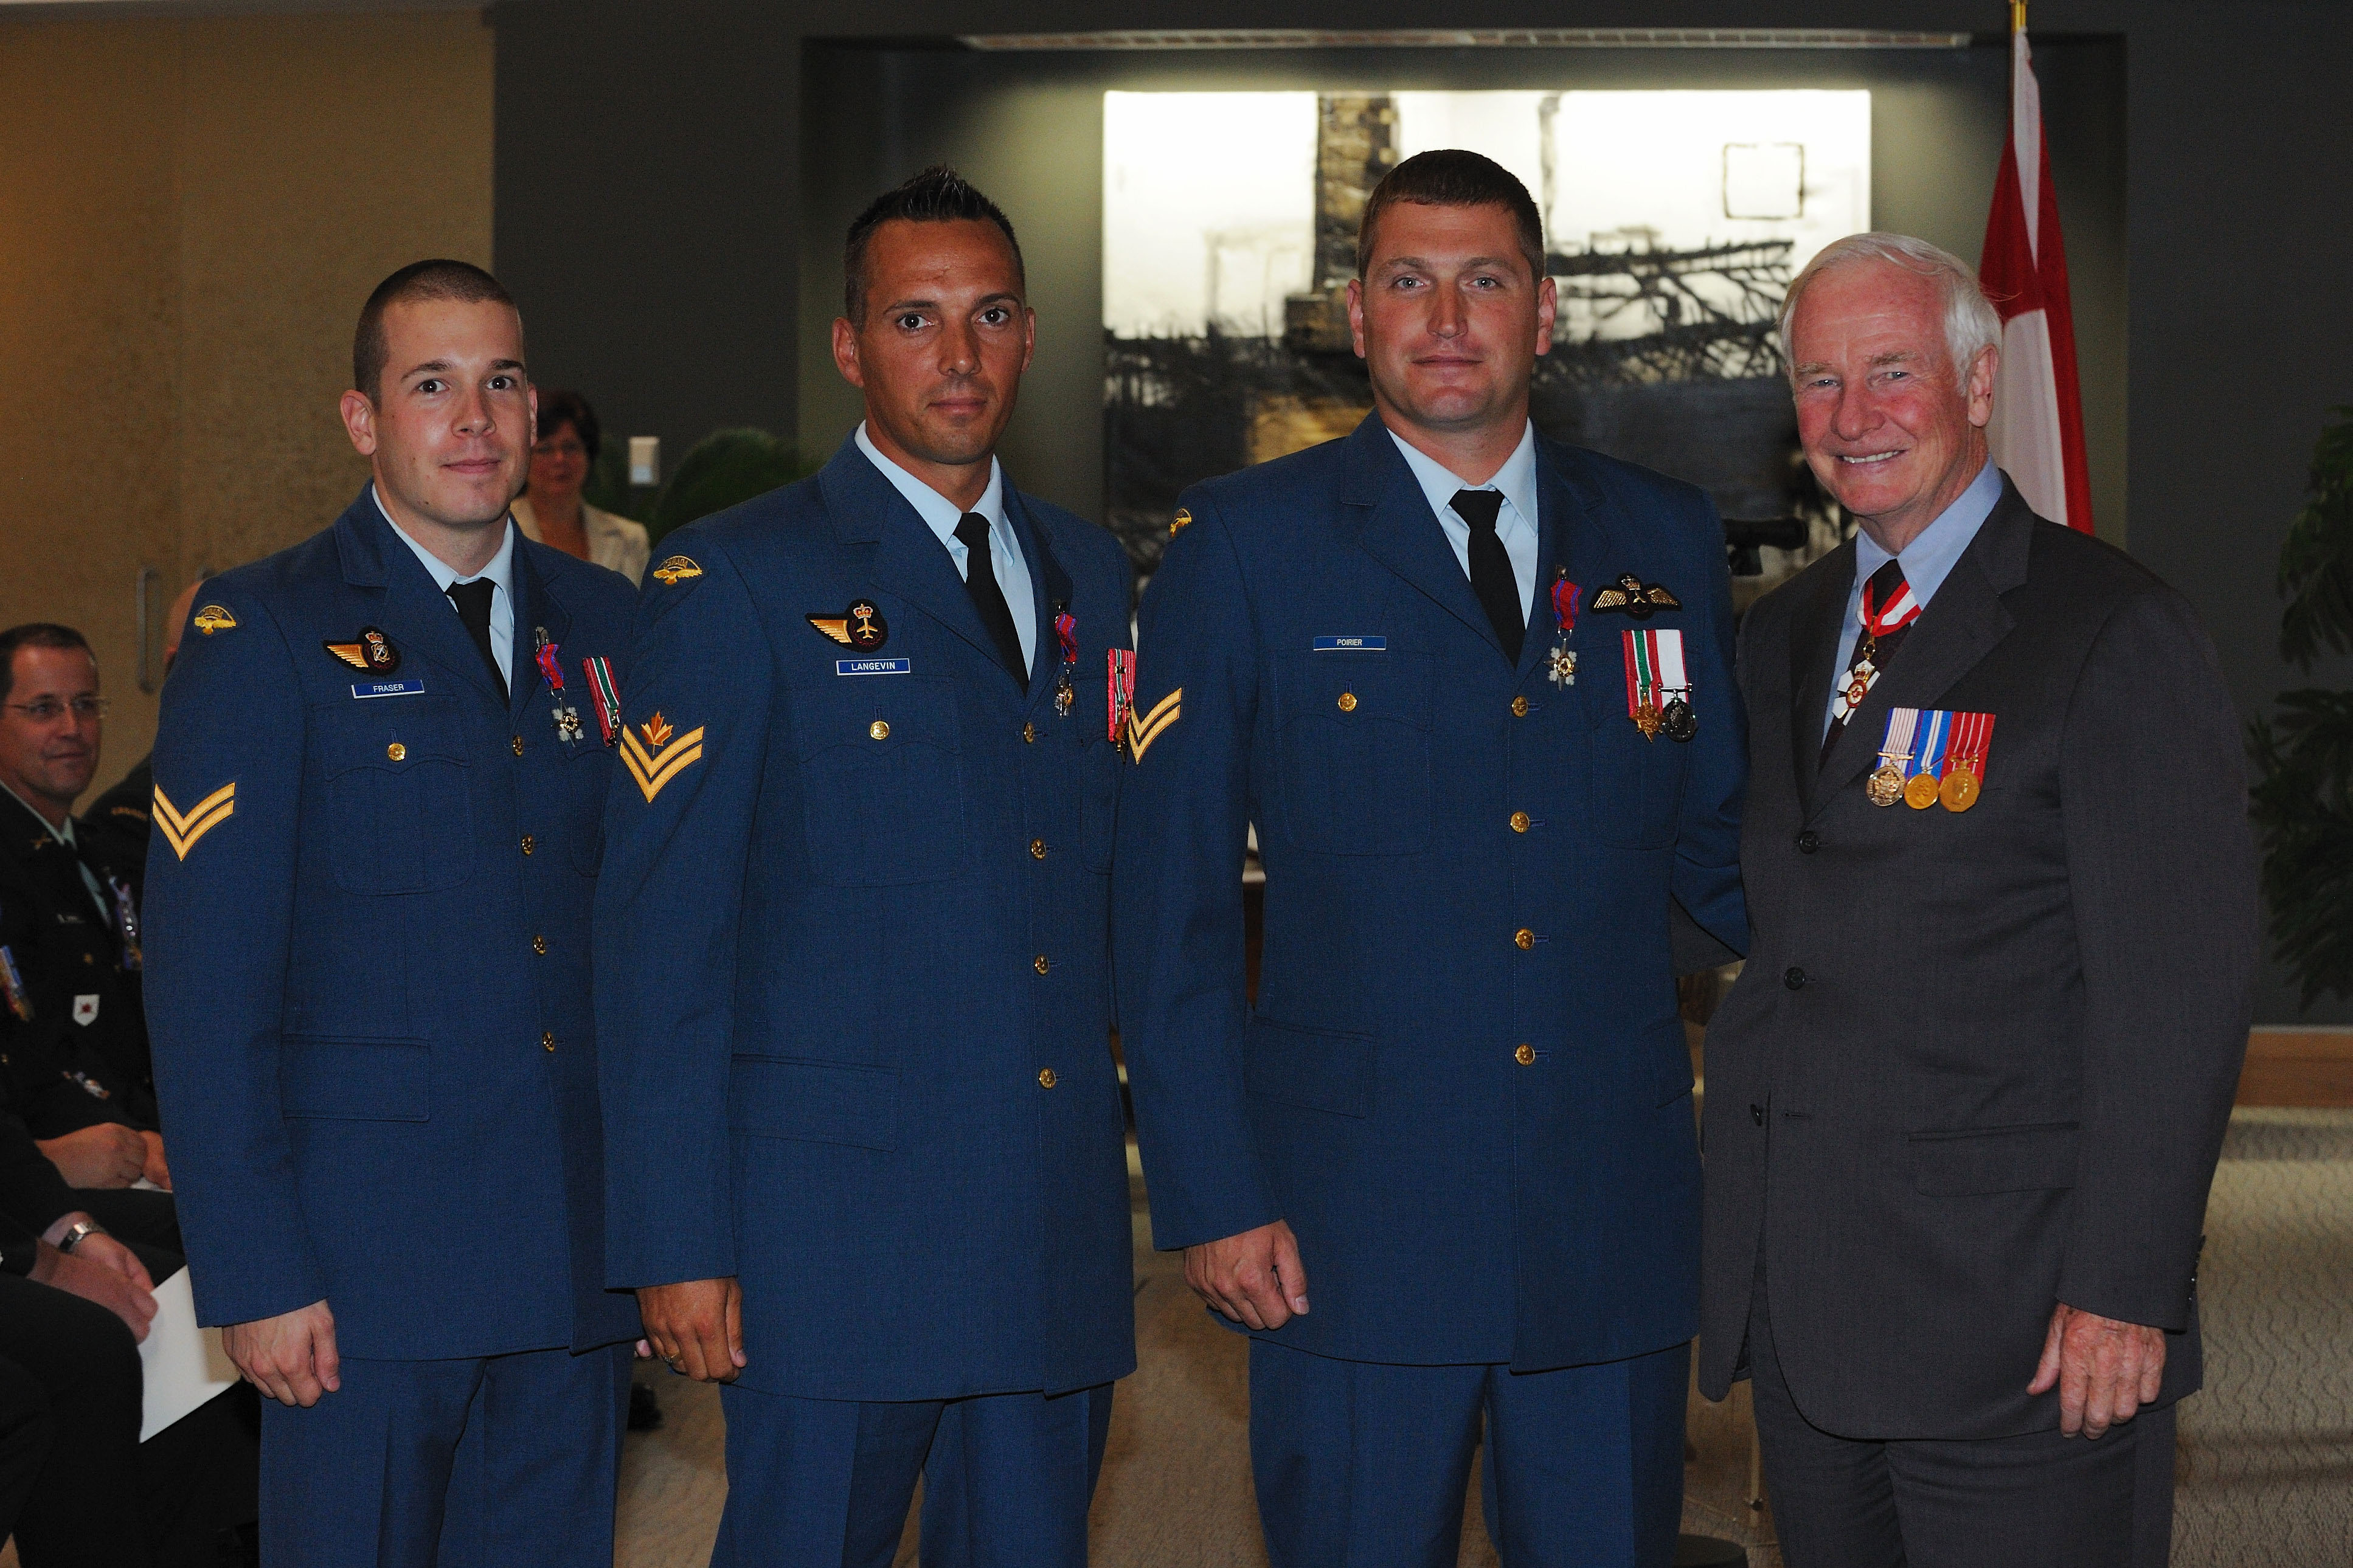 Private Adam J. P. Fraser, S.C., Corporal Déri J. G. Langevin, S.C., and Corporal Marc-André Poirier, S.C., received the Star of Courage from His Excellency. On July 19, 2009, corporals Marc-André Poirier and Déri Langevin and Private Adam Fraser demonstrated exceptional courage while helping people who had been injured following the crash of a civilian helicopter at the Kandahar Air Field, in Afghanistan. Alerted to the incident, the three rescuers rushed to the scene outside the security wall of their camp. They crossed a dangerous area engulfed in flames and dodged frequent explosions to reach two victims who were lying in a ditch near the wreckage of their burning helicopter. They moved the wounded to a safe place and provided first aid until medical personnel arrived. The rescuers had to abandon their search for other victims when they realized they were in a minefield. Thanks to the rescuers' efforts, five of the 21 passengers and crew survived.